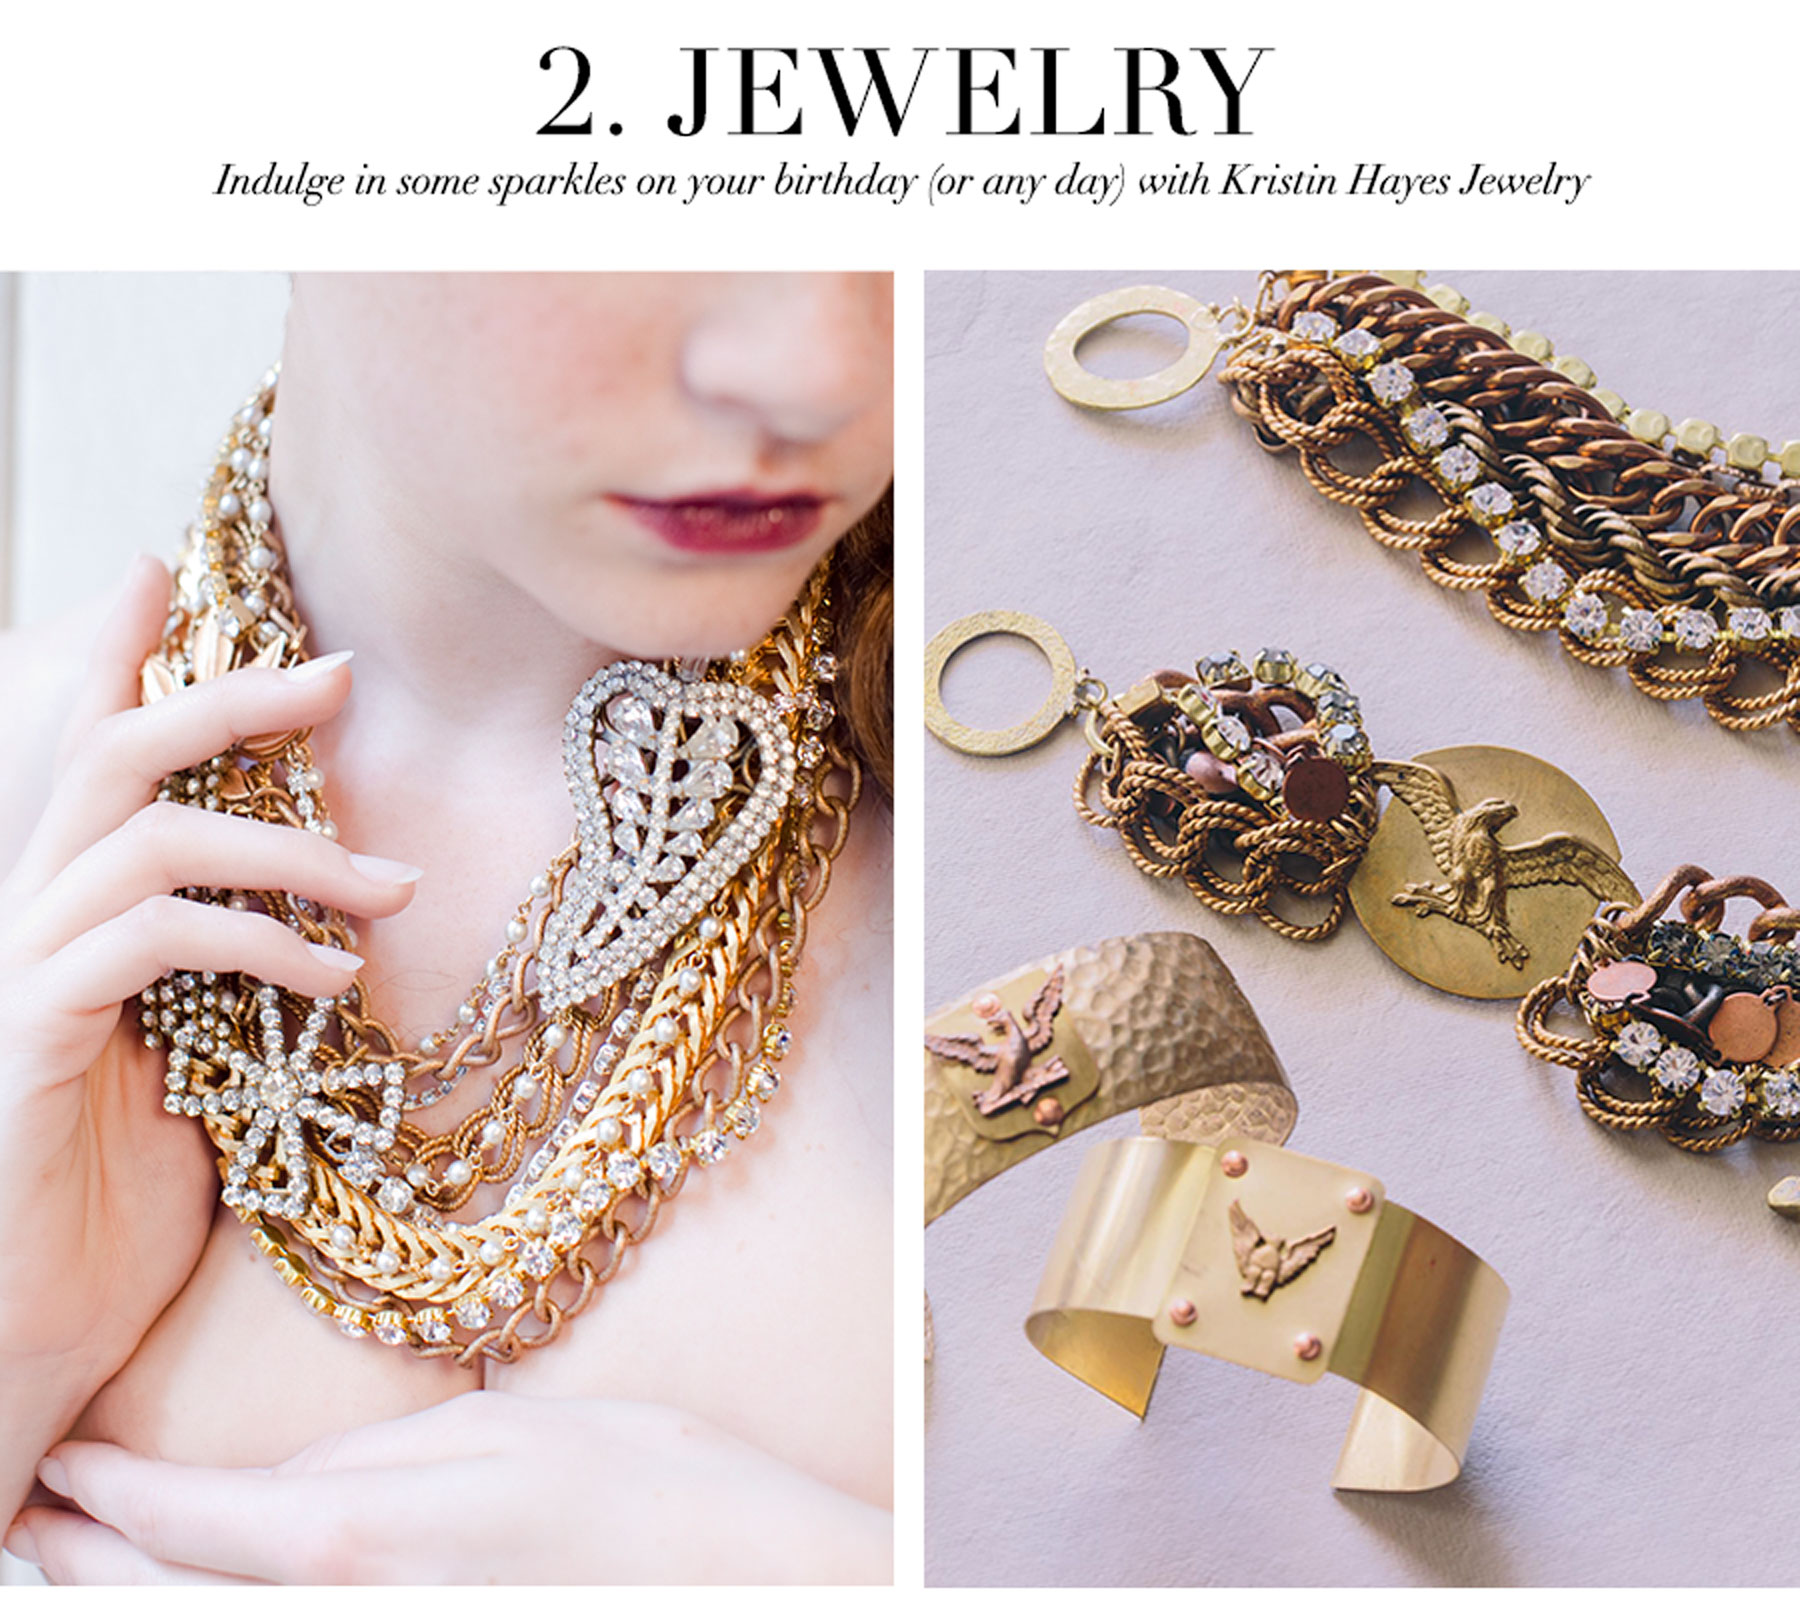 Ceci Johnson's Treat-Yourself Picks - Jewelry - Indulge in some sparkles on your birthday (or any day) with Kristin Hayes Jewelry